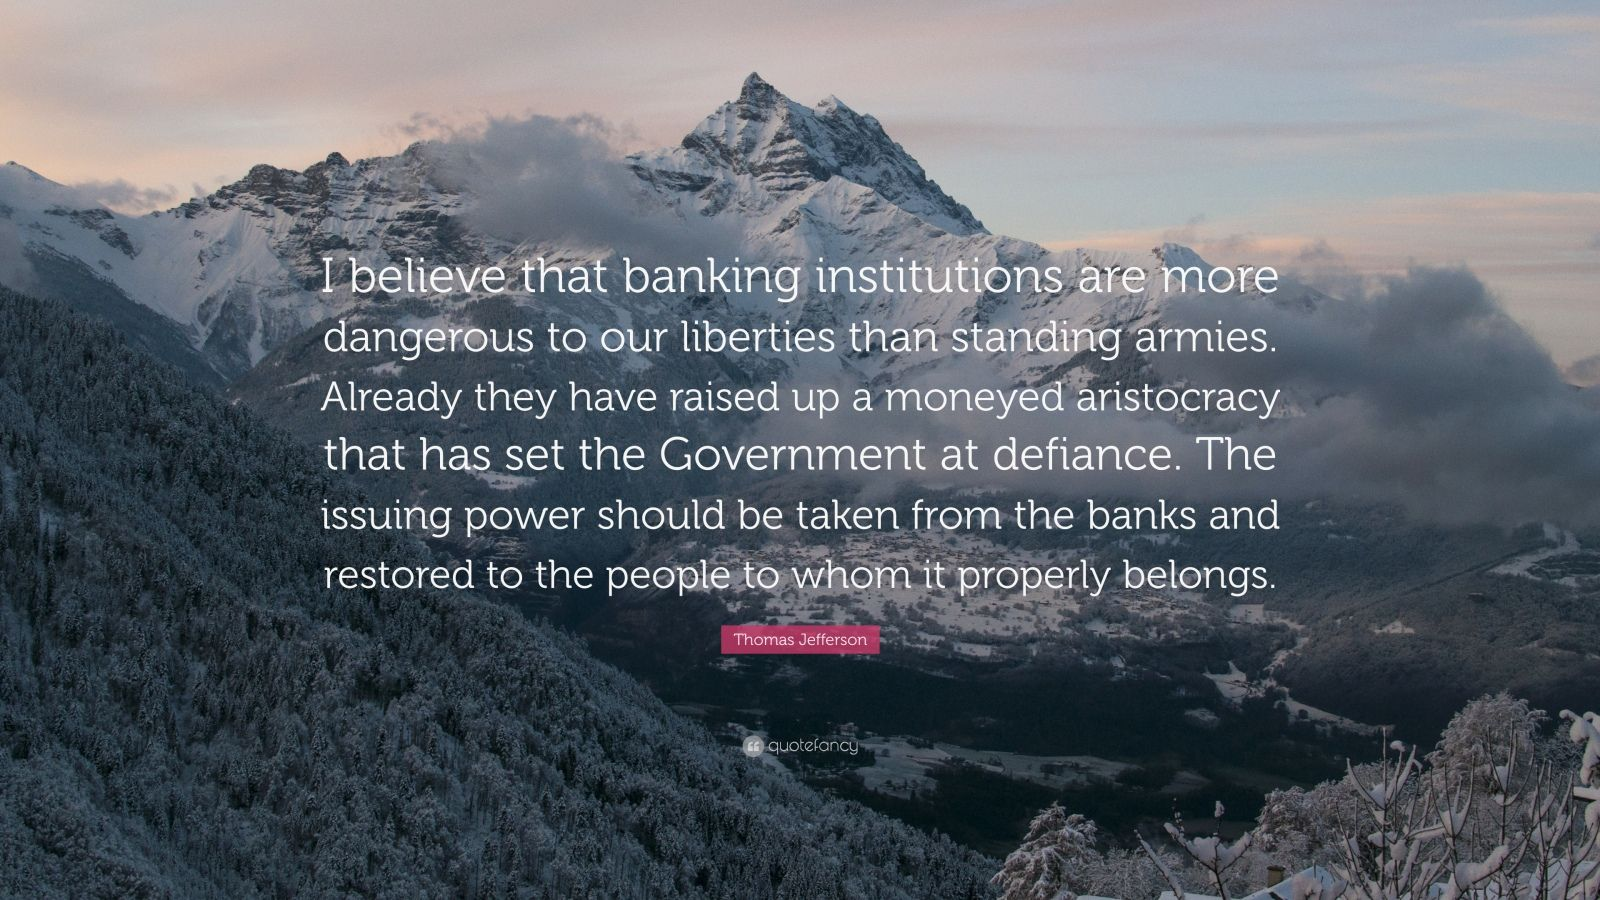 """Thomas Jefferson Quote: """"I believe that banking institutions are more dangerous to our liberties than standing armies. Already they have raised up a moneyed aristocracy that has set the Government at defiance. The issuing power should be taken from the banks and restored to the people to whom it properly belongs."""""""